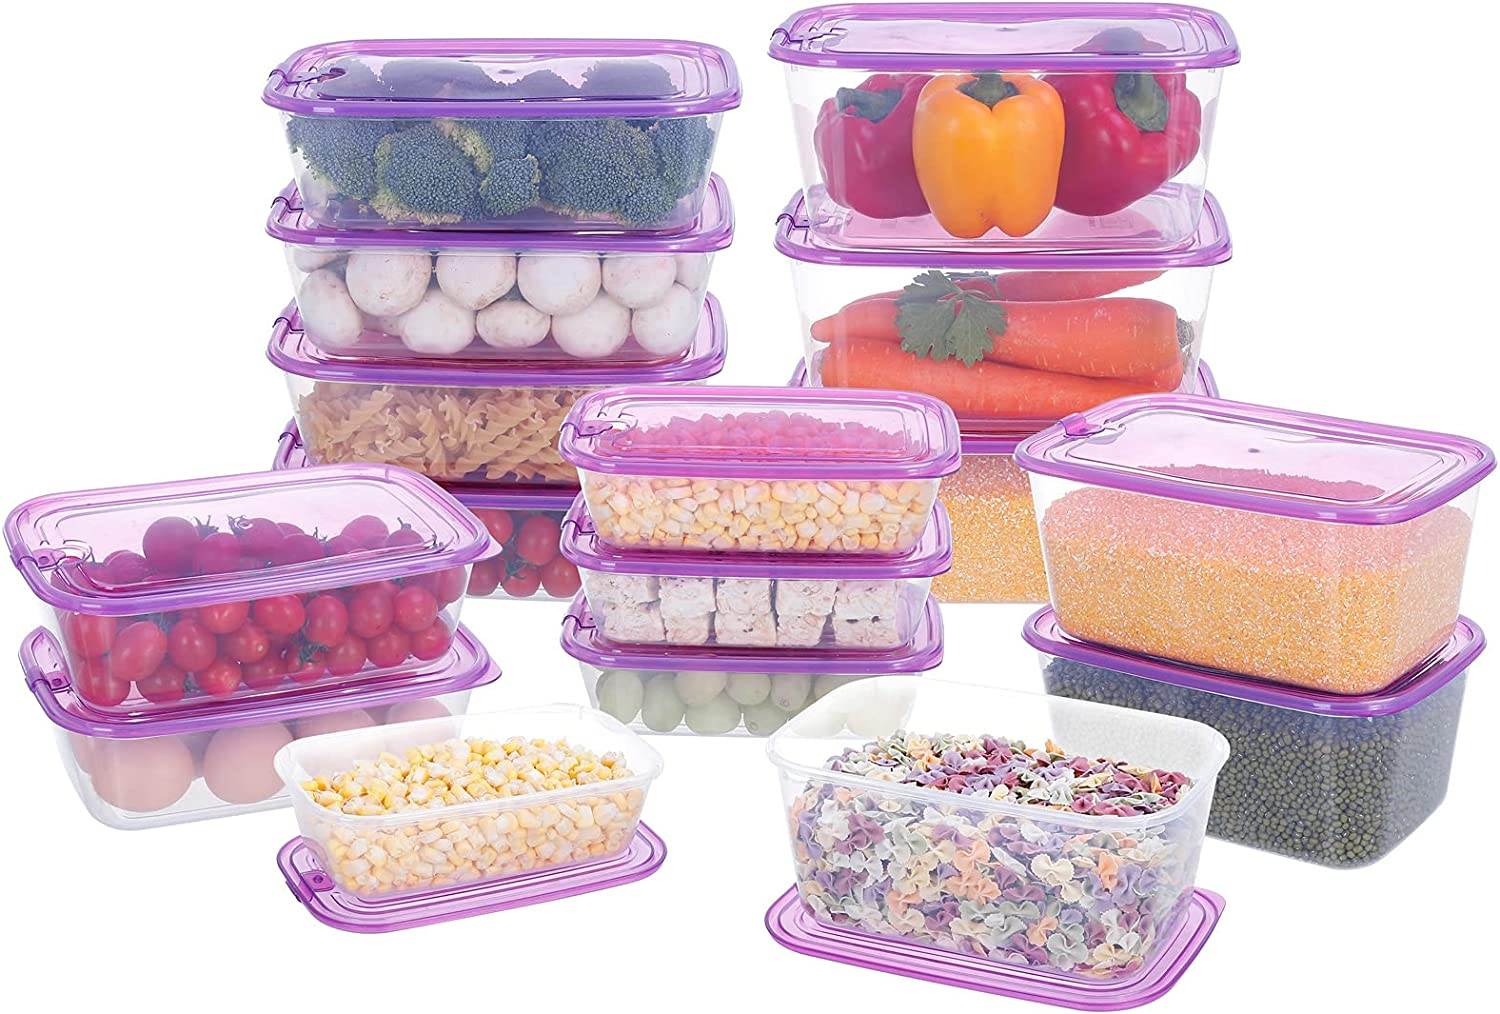 【16 PACK】Large Capacity セール Food Storage Set with 4年保証 Containers Lid